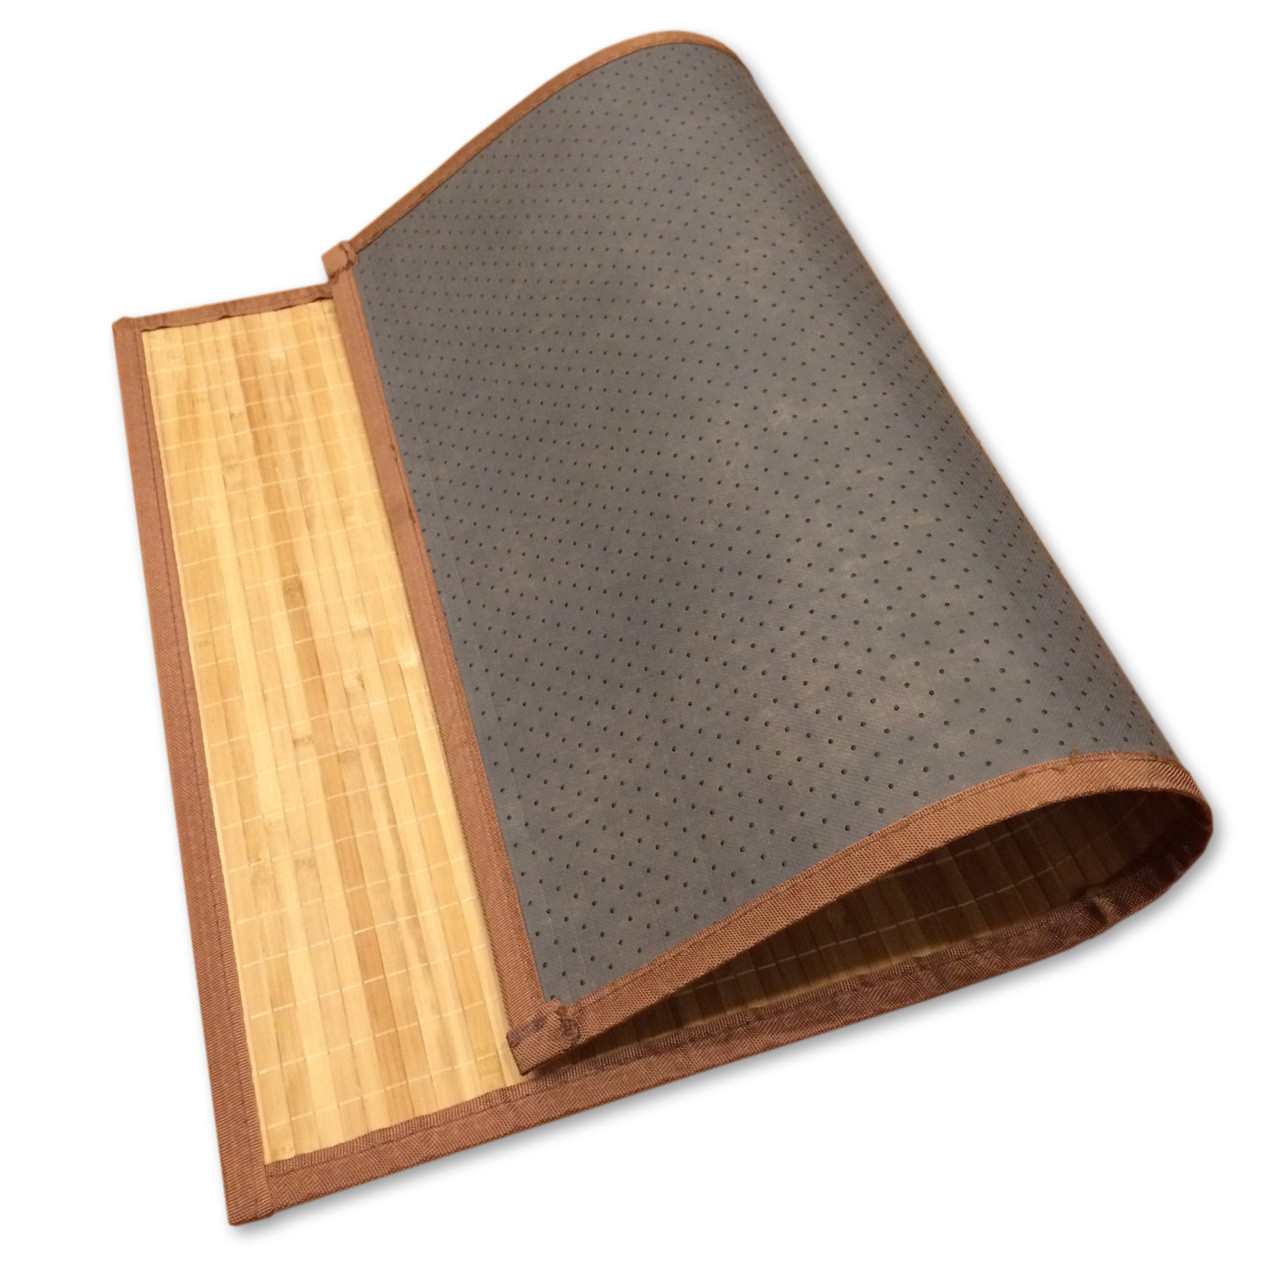 Bamboo Non Skid Floor Mat By Sustainable Simplicity 24 X 34